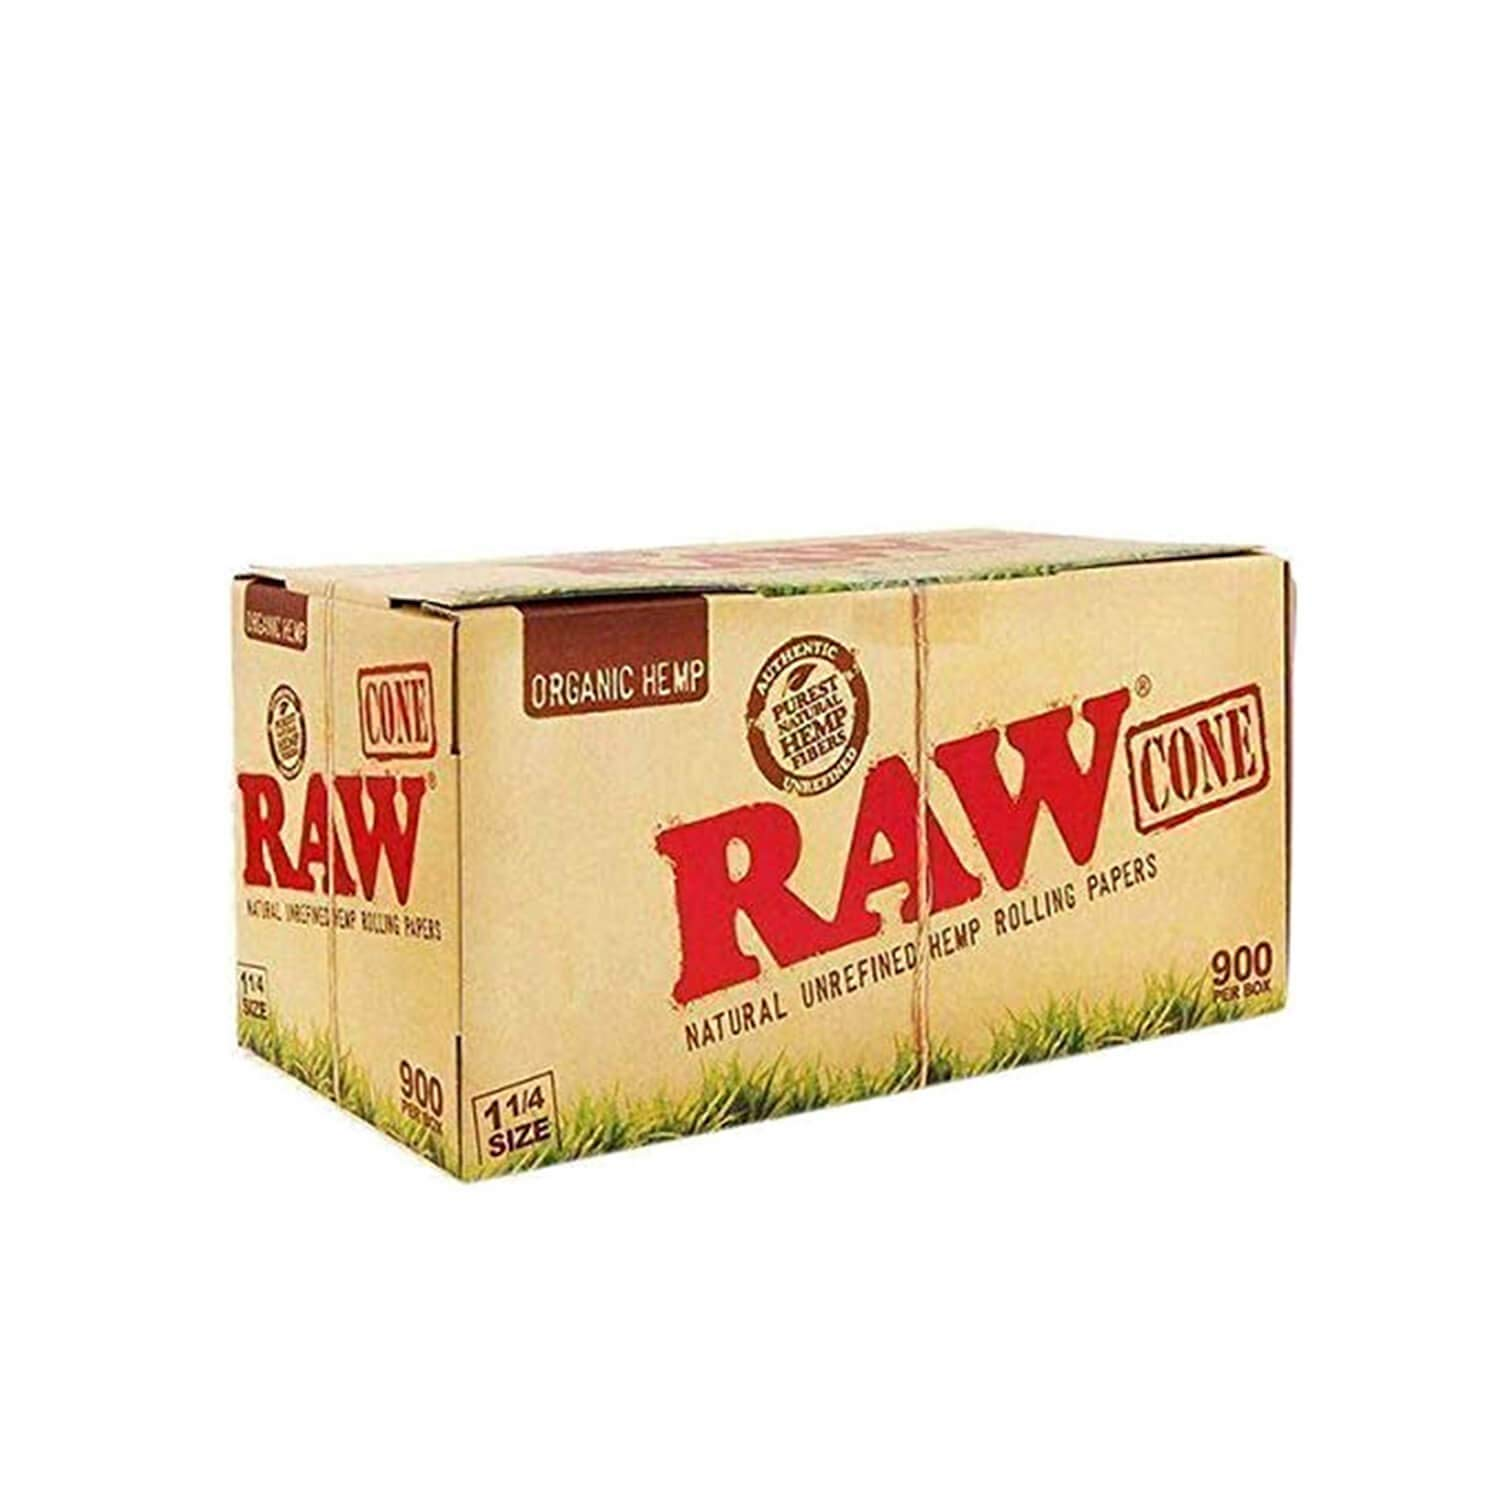 900 Raw Organic Pre Rolled 1/4 Cones